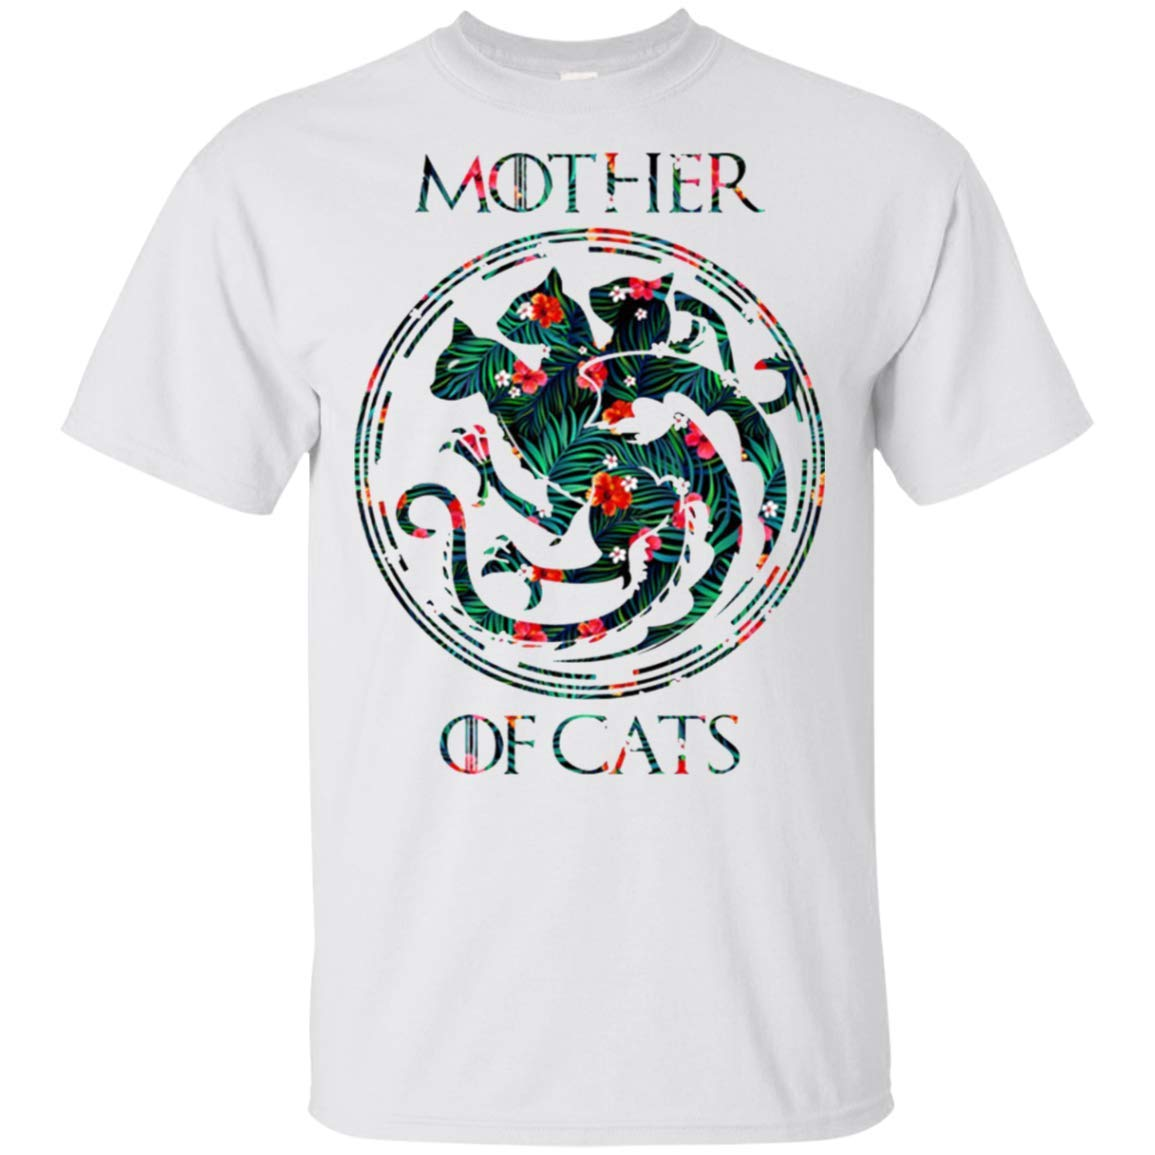 Amazing Mother Of Cats Shirt G200 T Shirt 1307